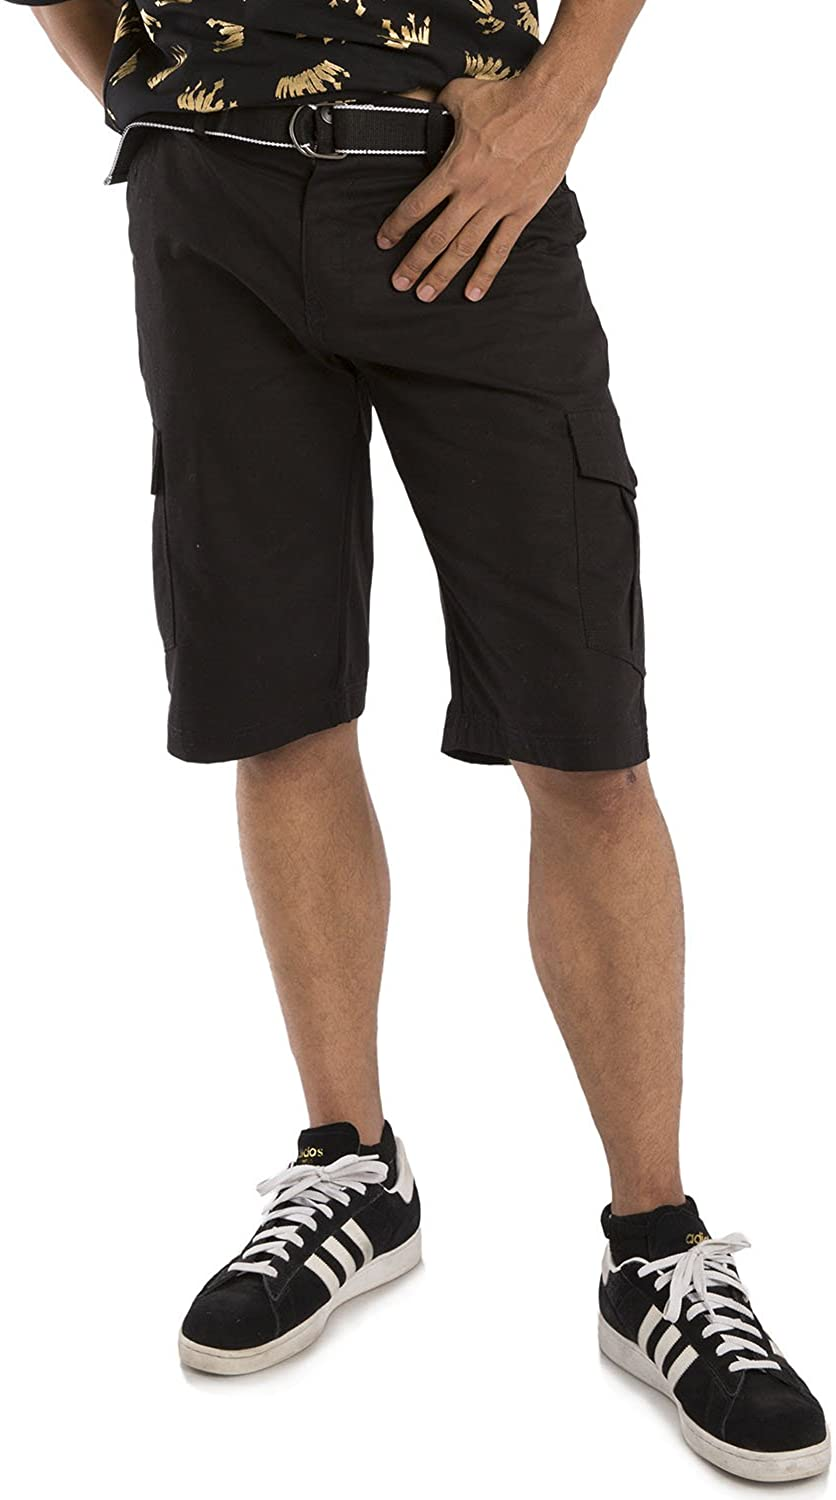 Vibes Mens Cotton Canvas Cargo Shorts with Matching Belt 13 Length